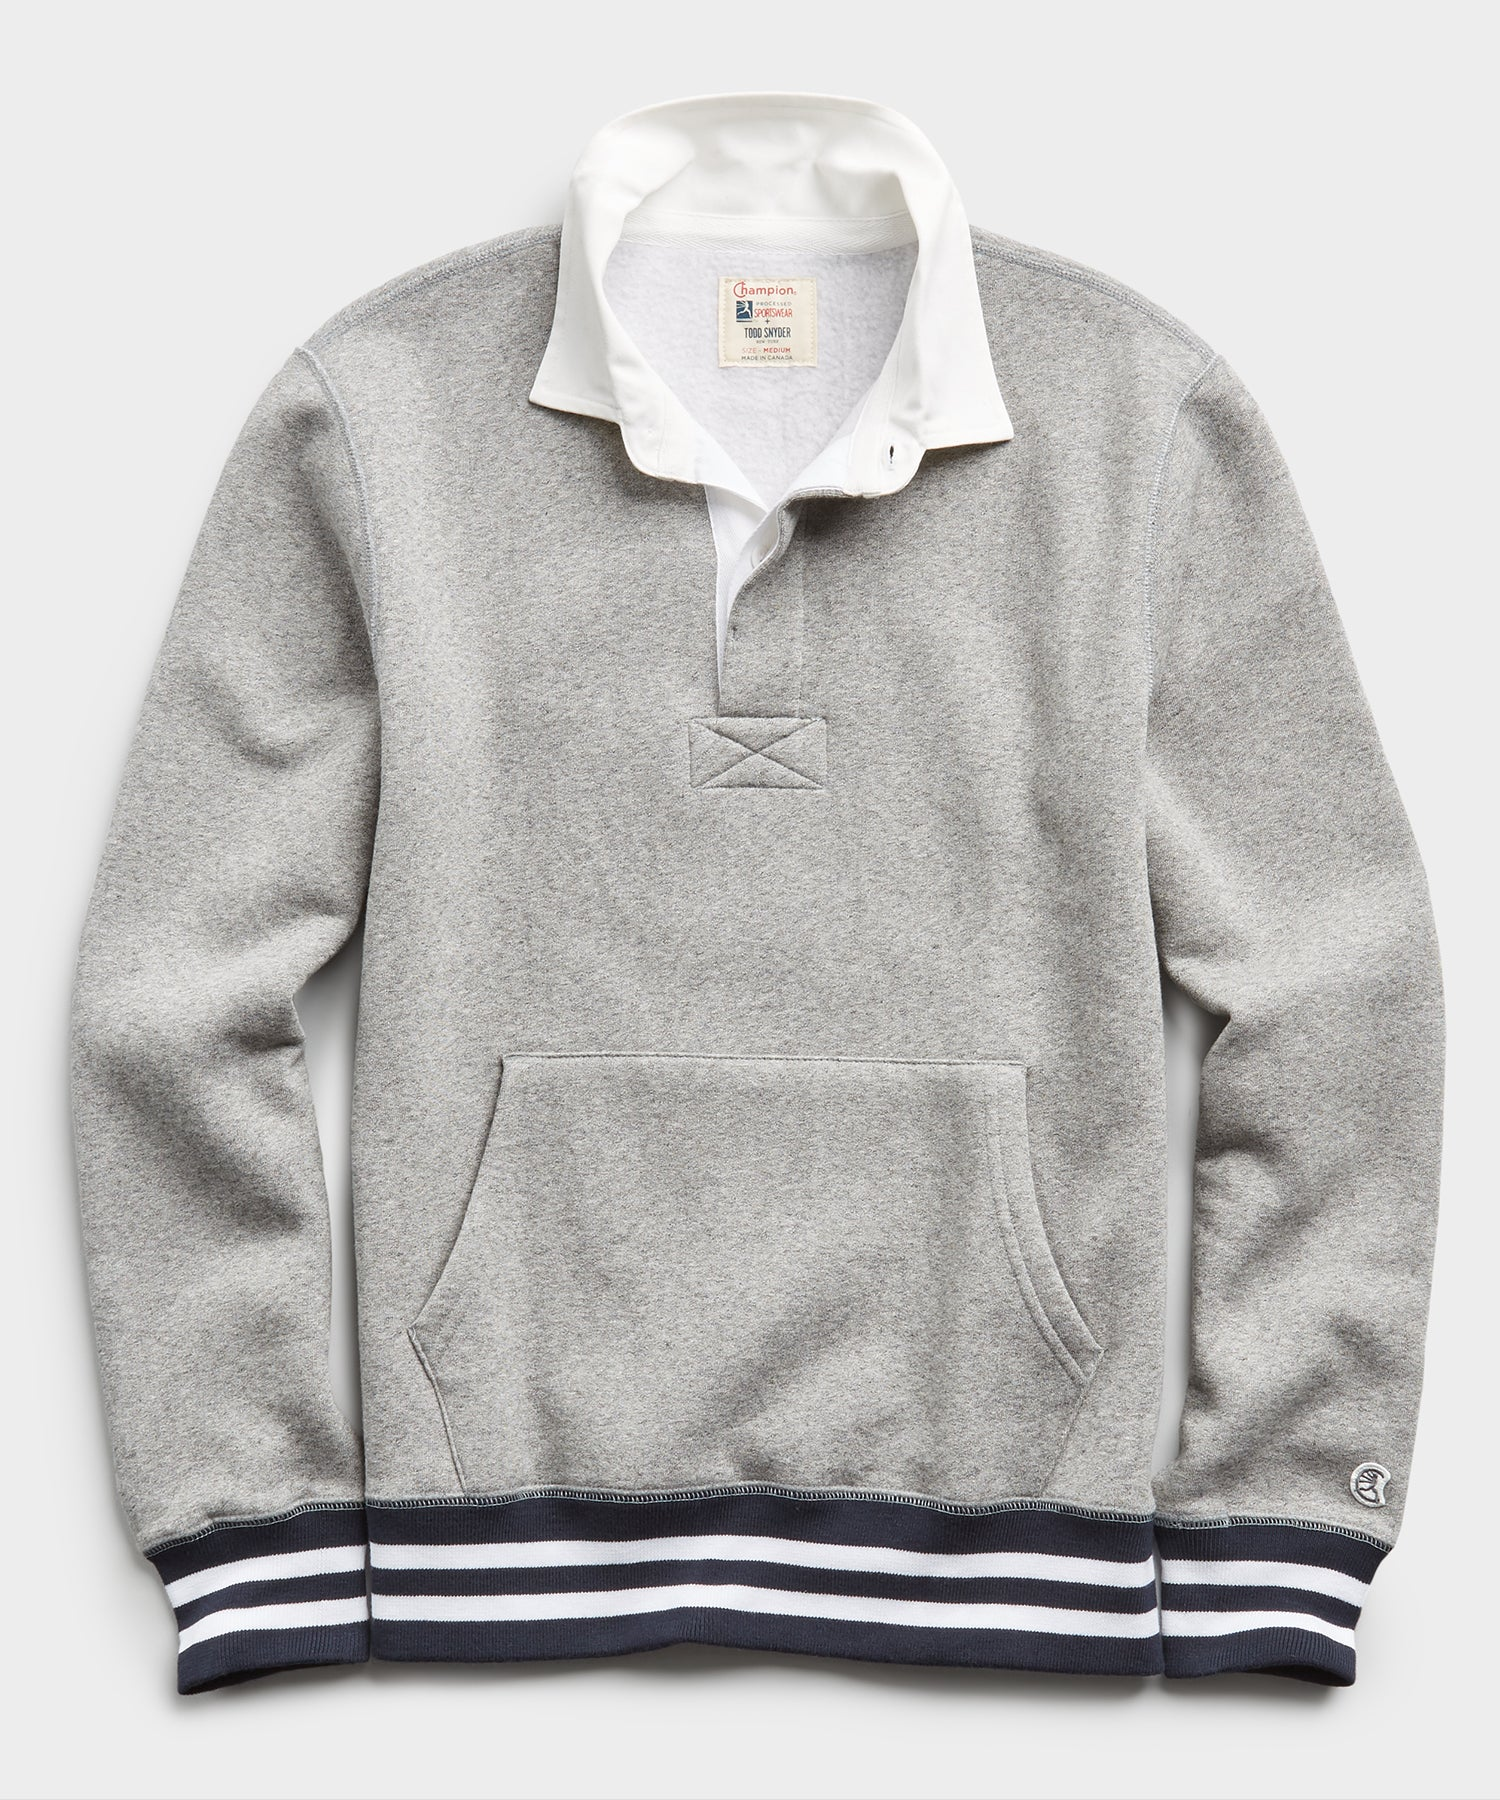 Rugby Sweatshirt in Light Grey Mix